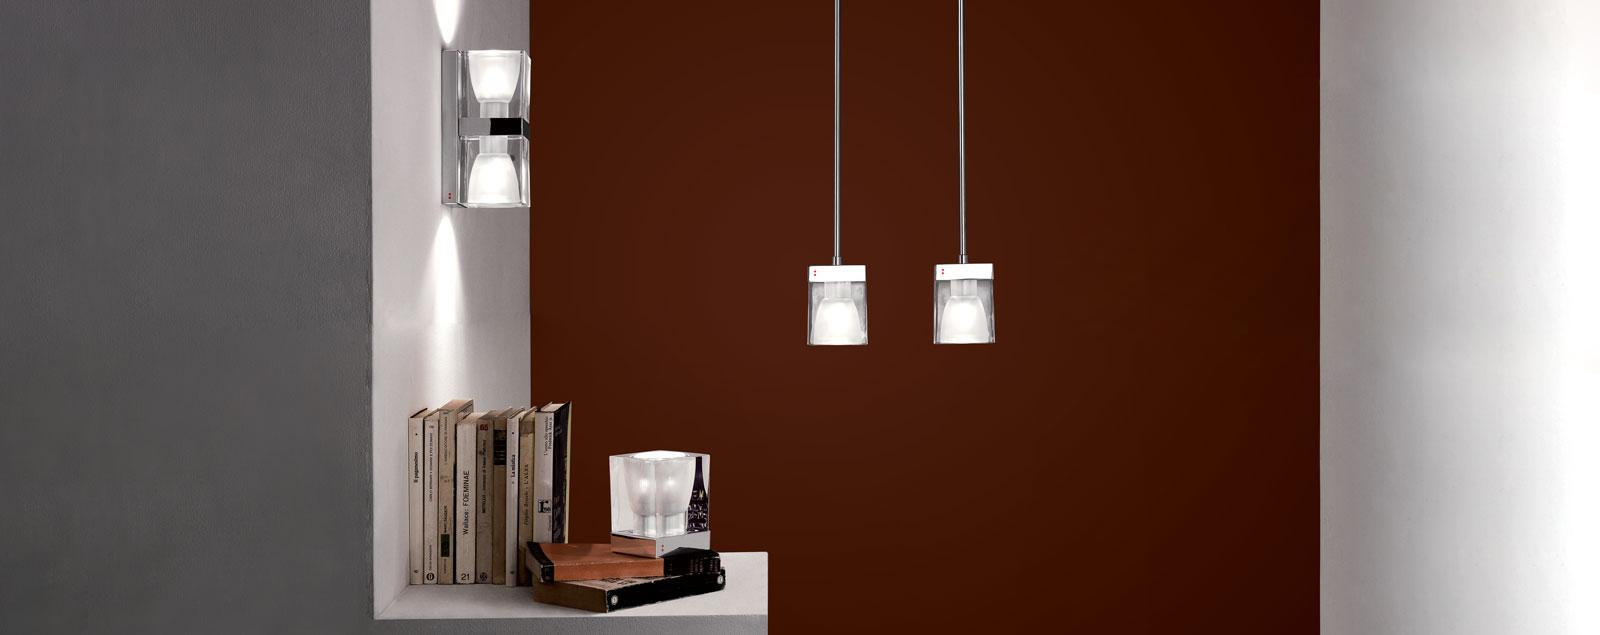 D28 Cubetto collection - Lamps and Chandeliers Fabbian Illuminazione